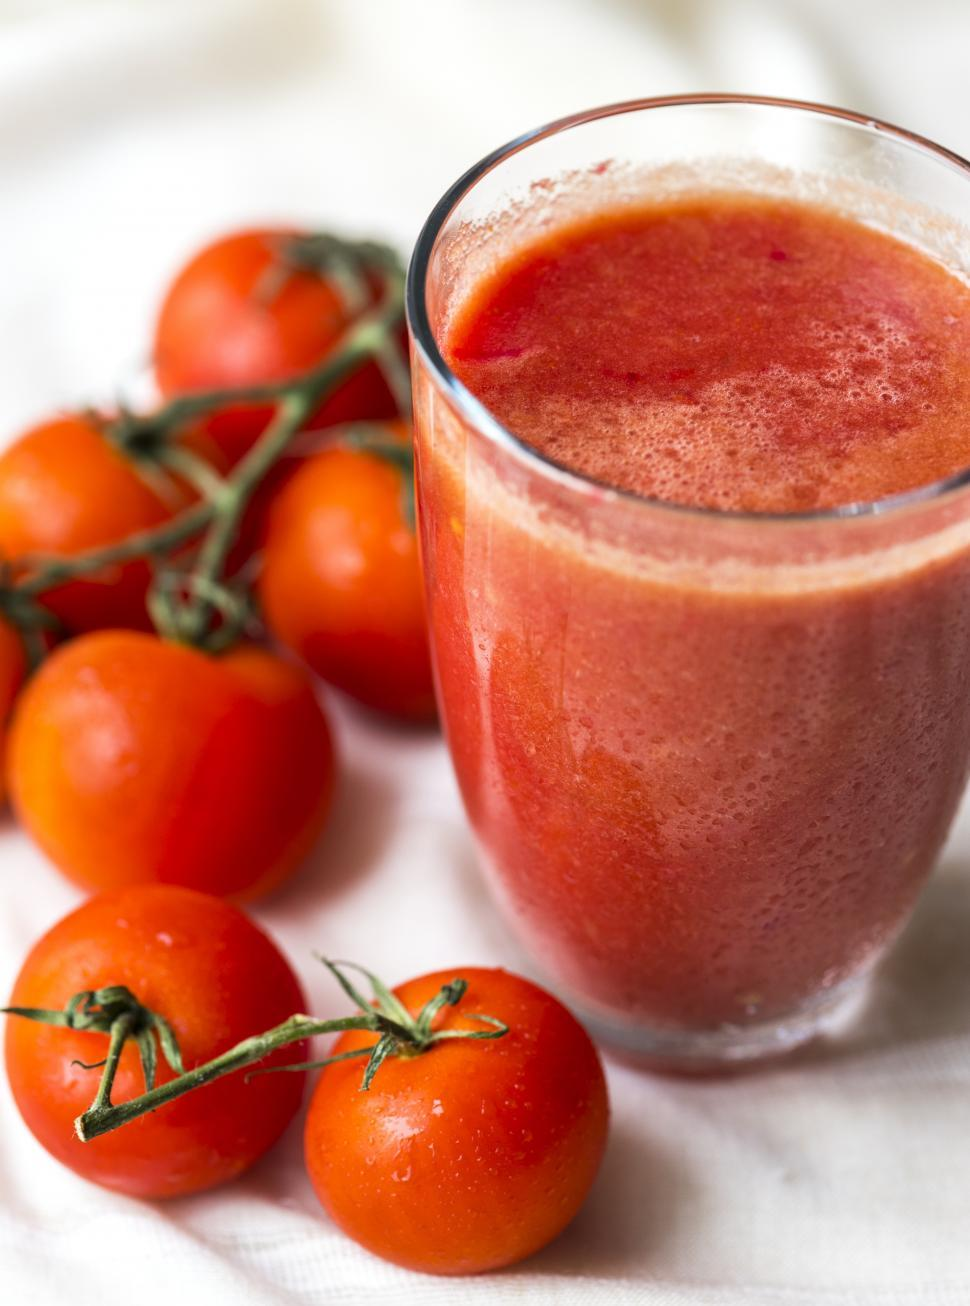 Download Free Stock HD Photo of Close up of a glass of tomato juice with whole tomatoes Online